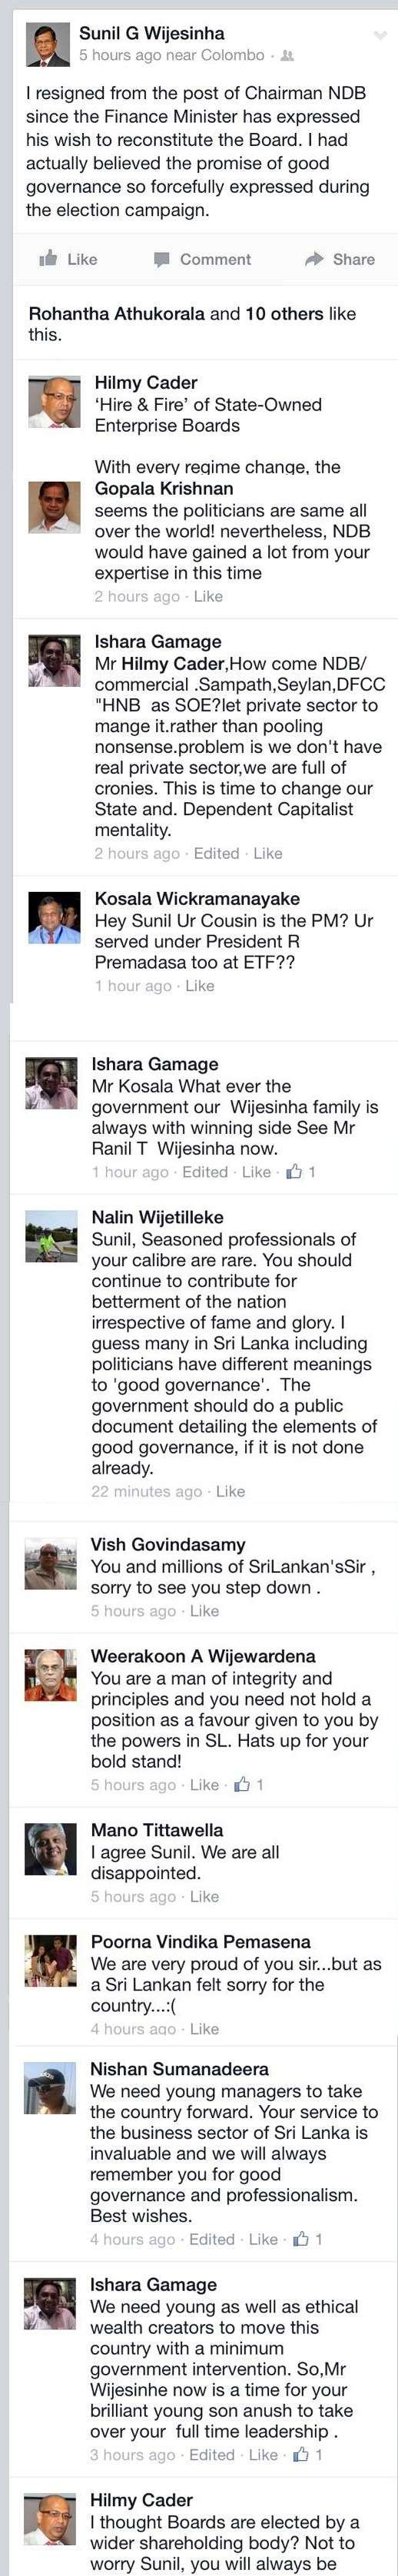 Exclusive - Sunil Wijesinha's fate at NDB decided by his Cousin Ranil Wickremasinghe - Views from People in the Sri Lanka's Cocktail Circles Sunil11